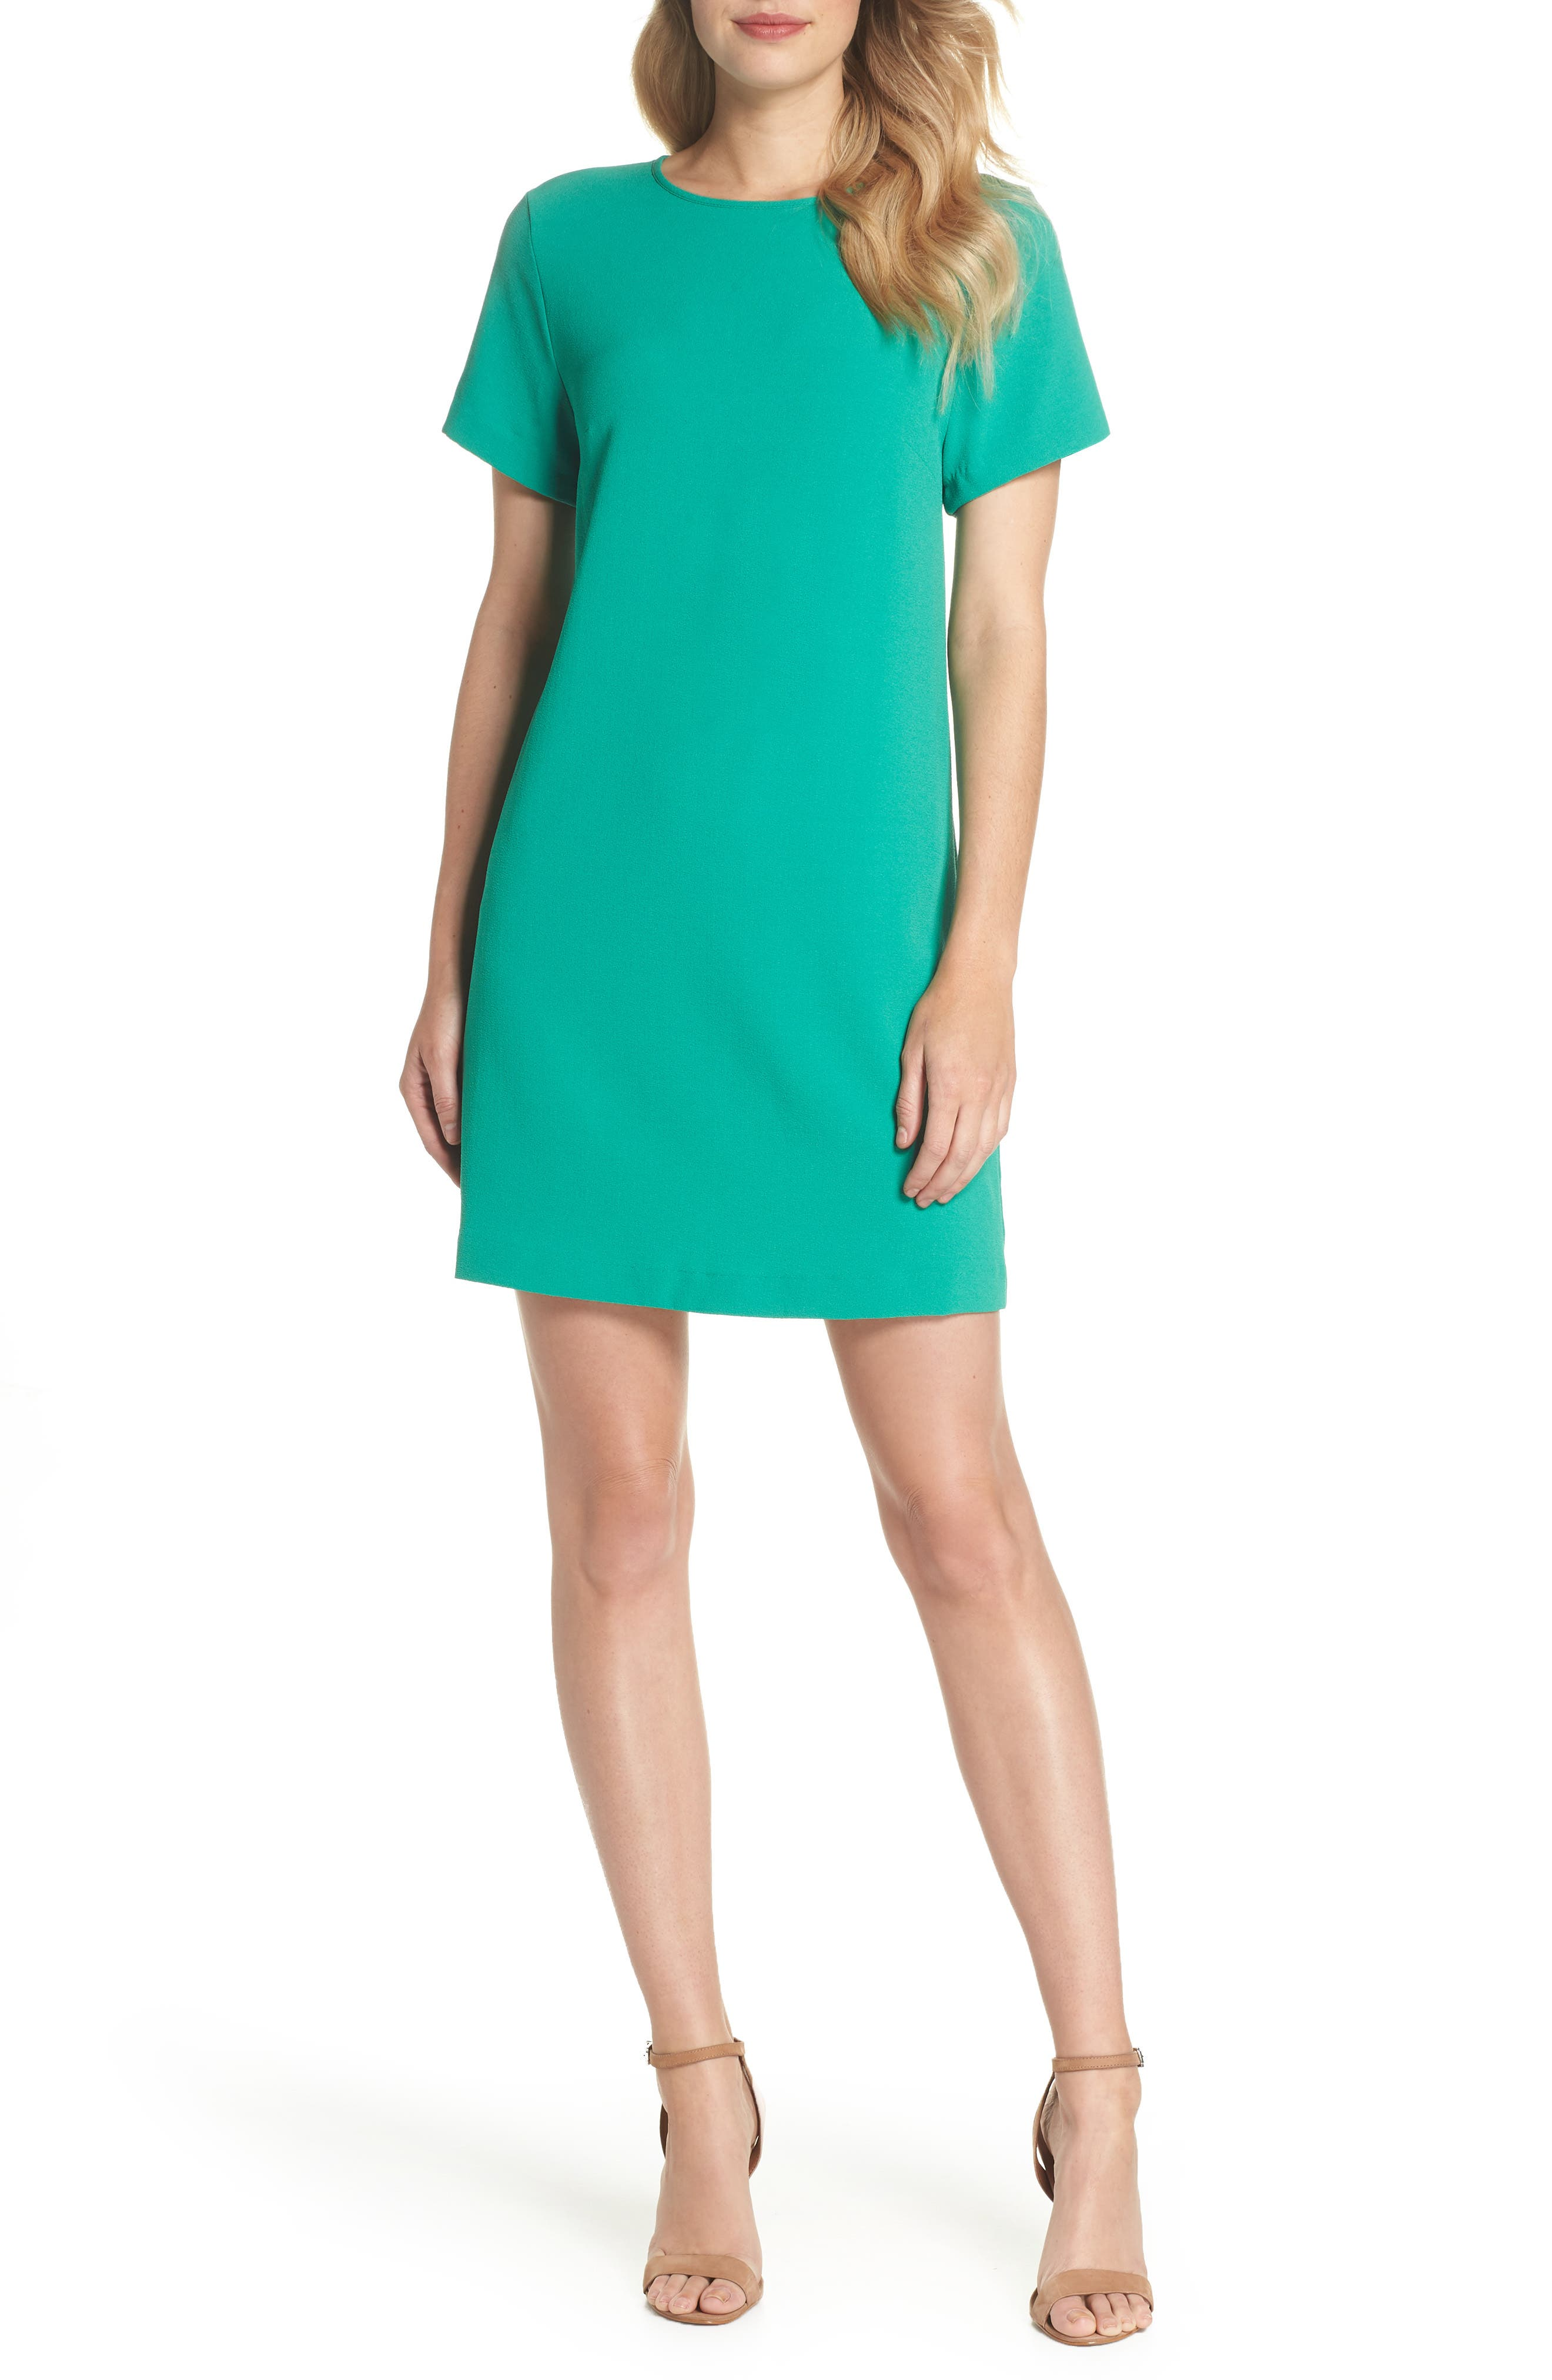 Devery Crepe Shift Dress,                         Main,                         color, Emerald Green